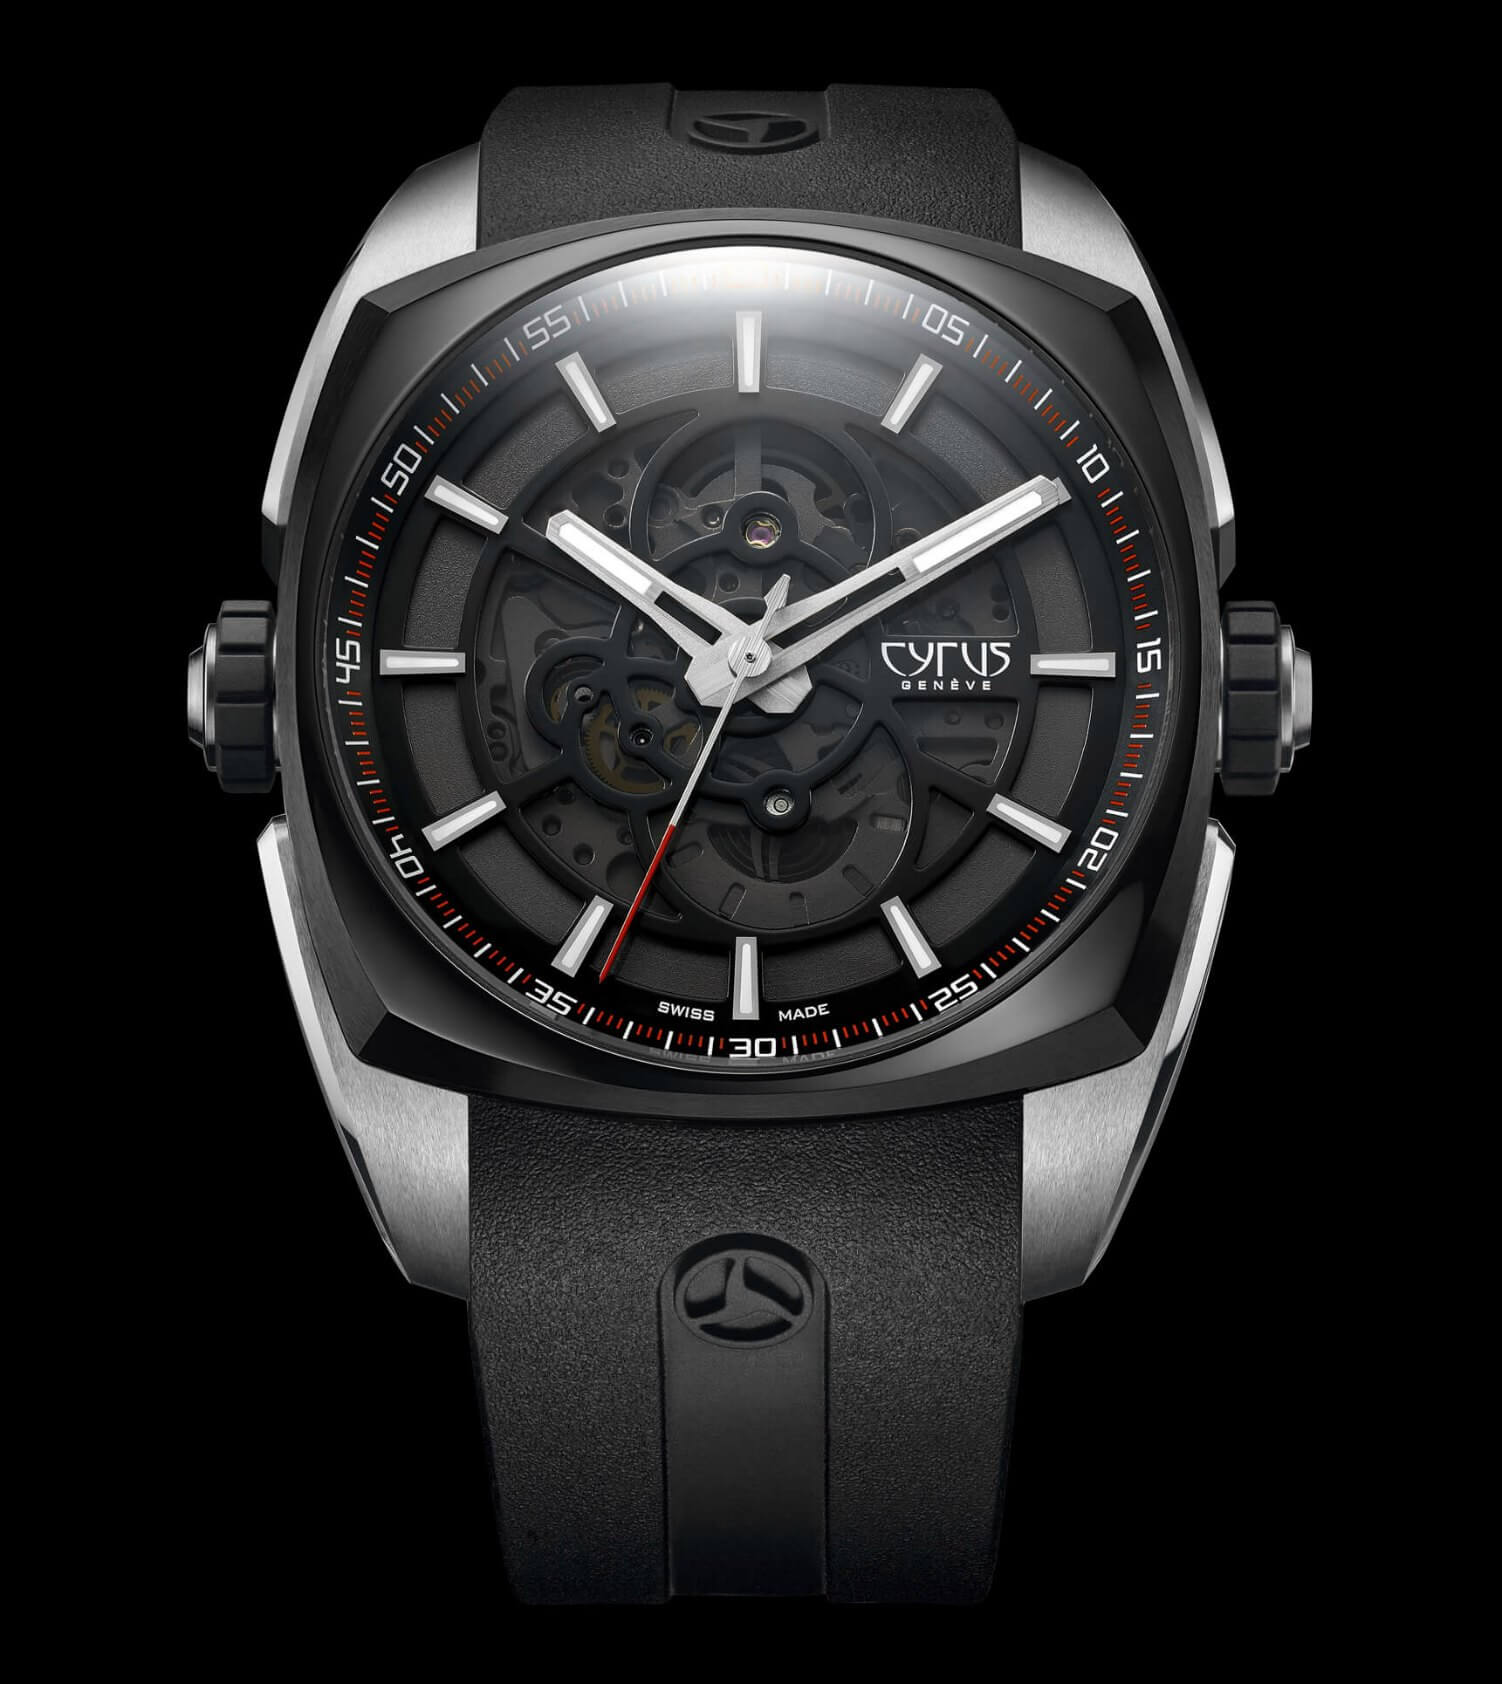 Cyrus watches - Swiss watchmakers